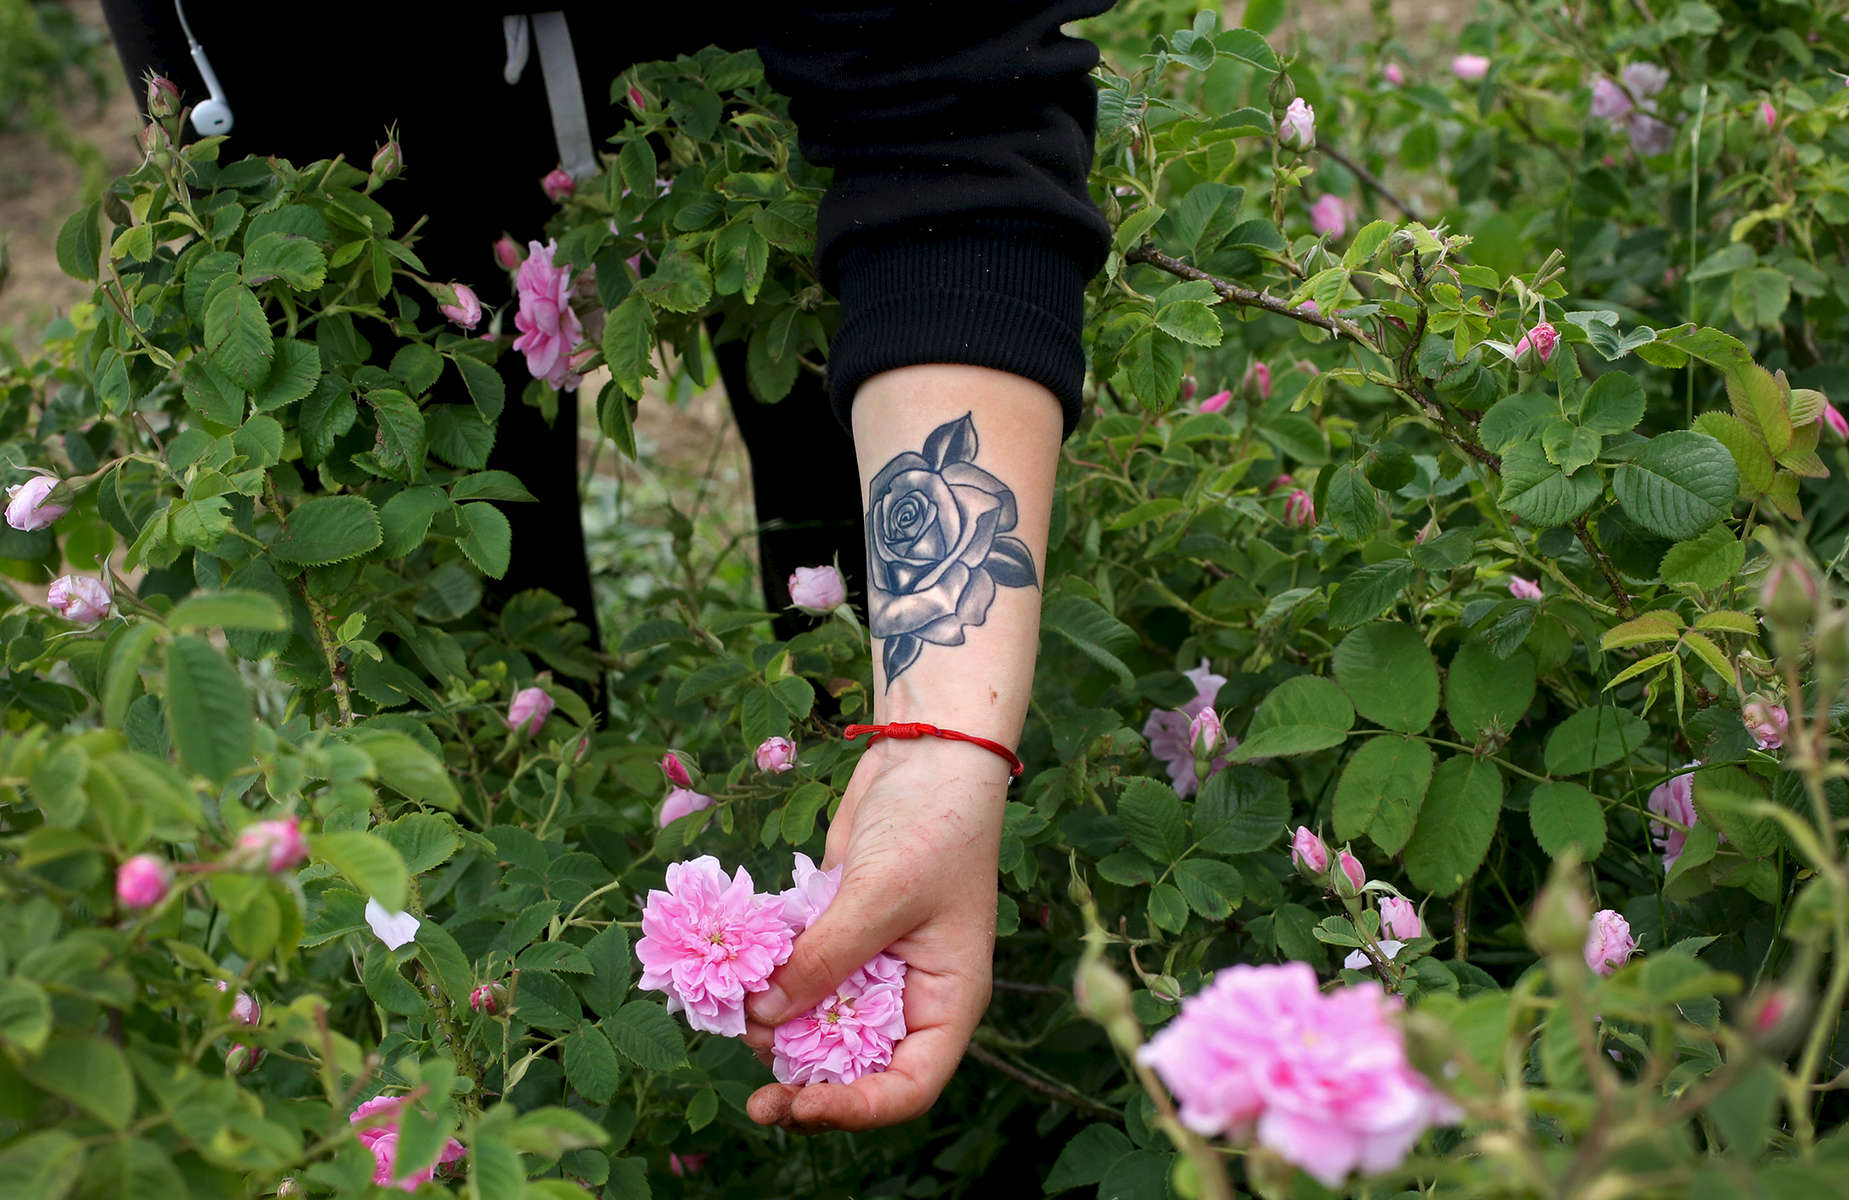 Yoana Mircheva, 16, picks roses in rose gardens in Maglizh, Bulgaria, on May 25, 2018. Mircheva has a tattoo of a rose on her left arm, that she says she got because her paternal grandfather loved roses. Photo by: Yana Paskova for National Geographic Traveler